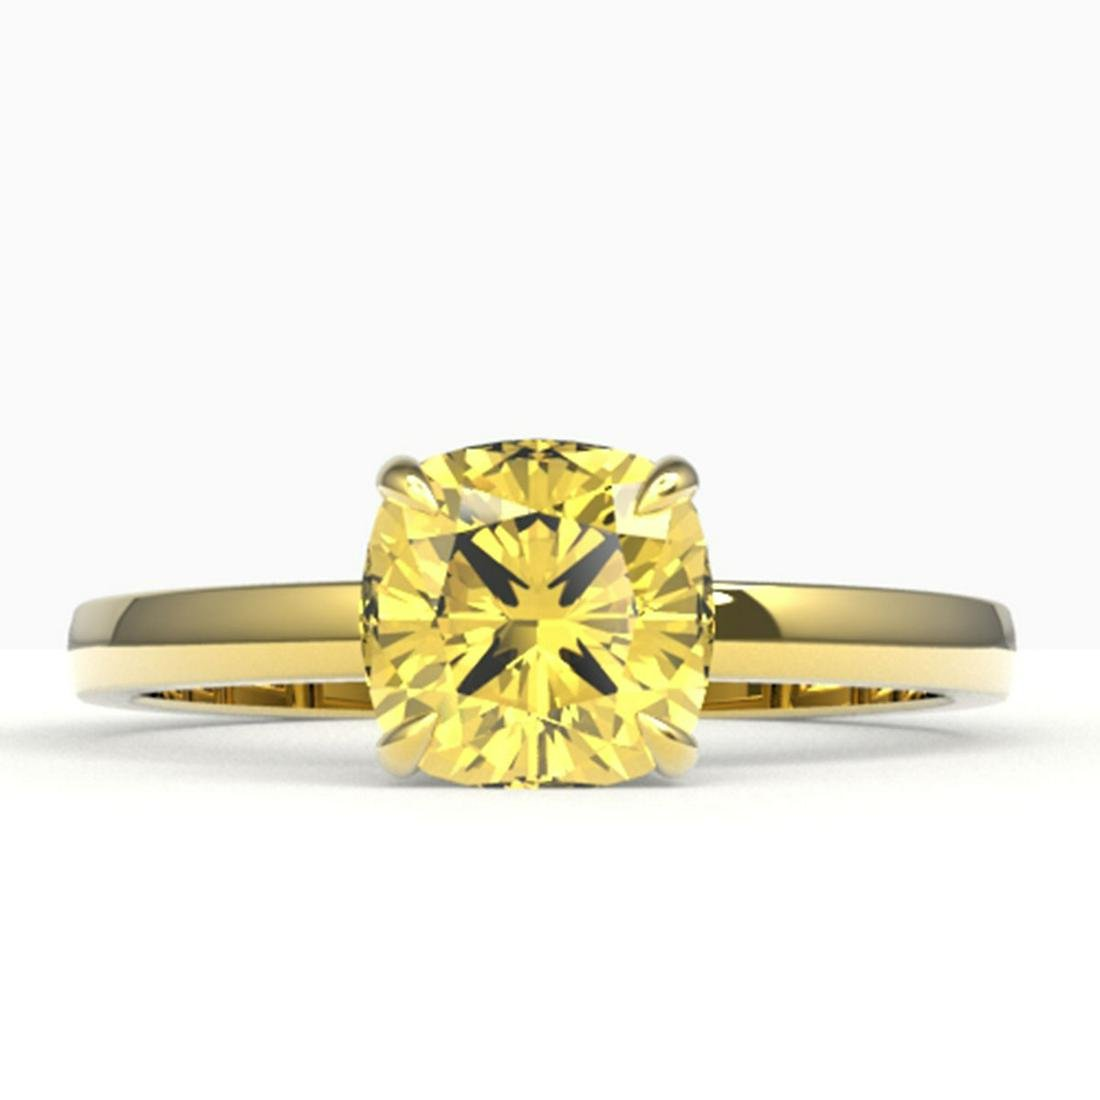 1.50 ctw Cushion Cut Citrine Ring 18K Yellow Gold